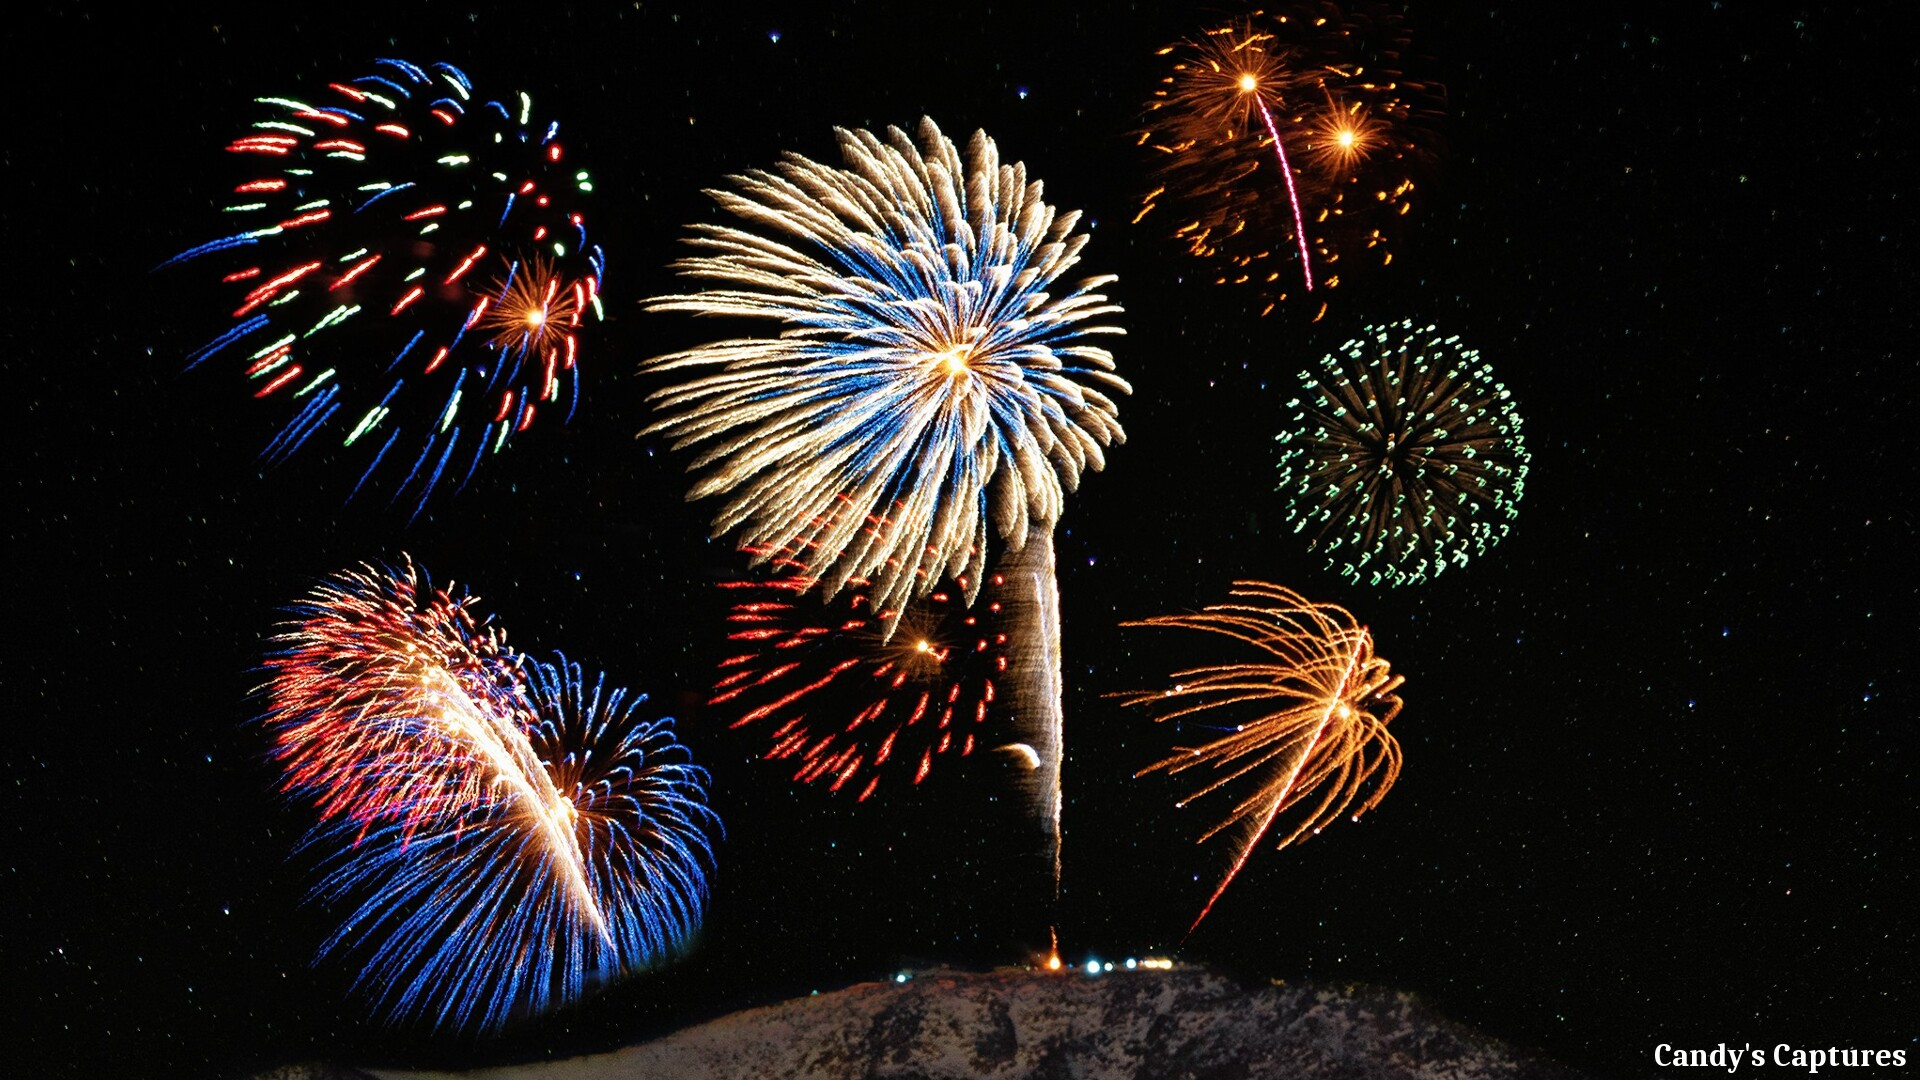 New Years Eve Fireworks on Pikes Peak from Candy's Captures.jpg